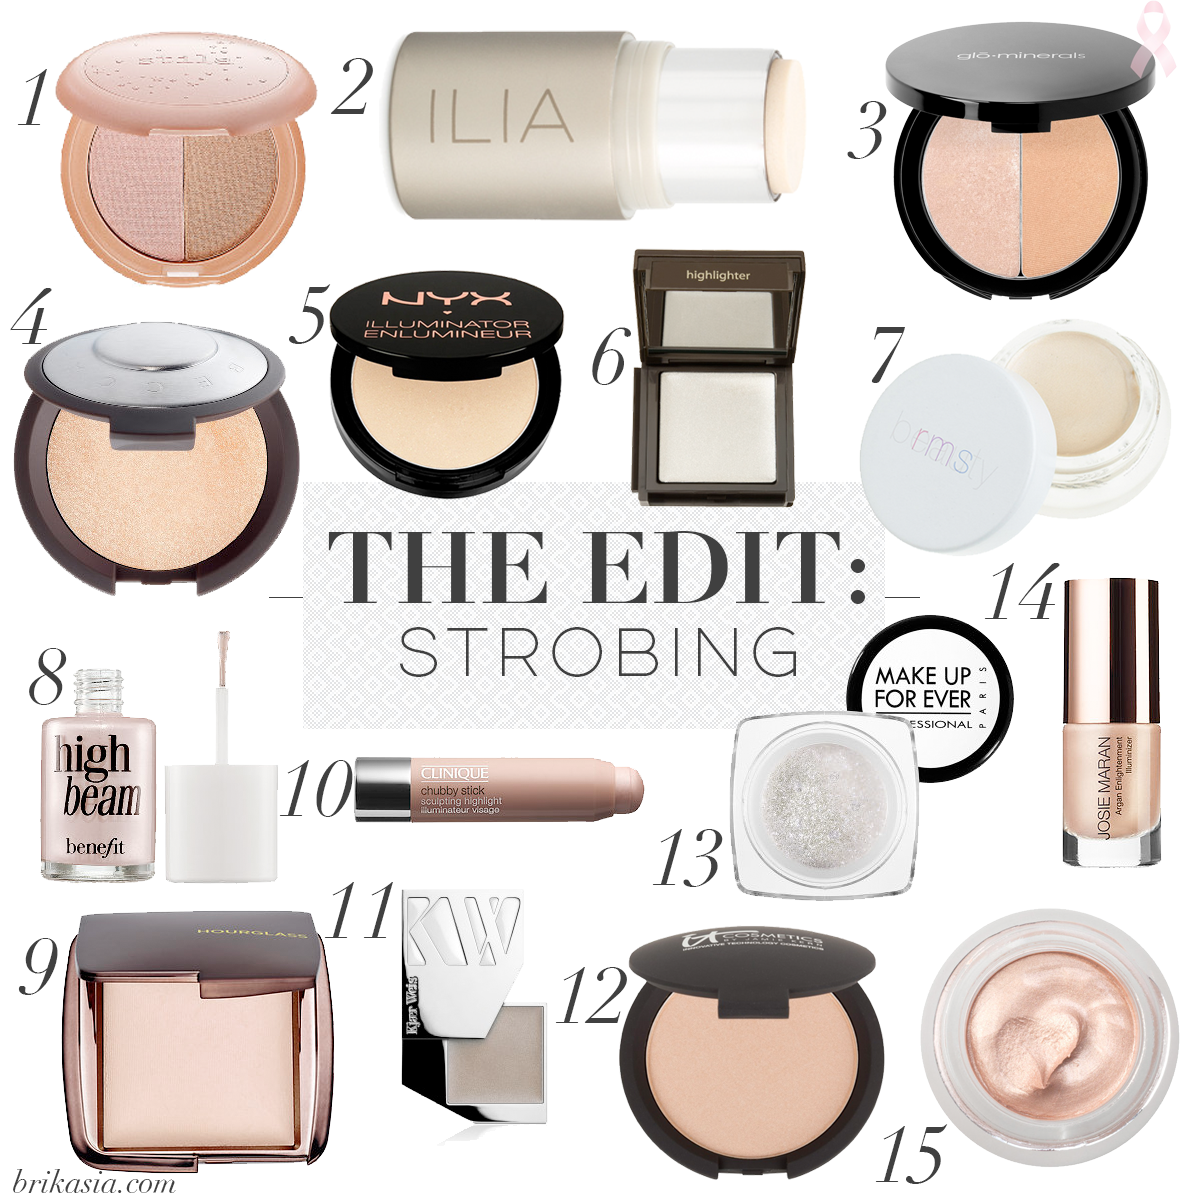 strobing, highlighting, illuminating, strobing beauty trend, 2015 beauty trends, how to strobe makeup, what is strobing highlighting